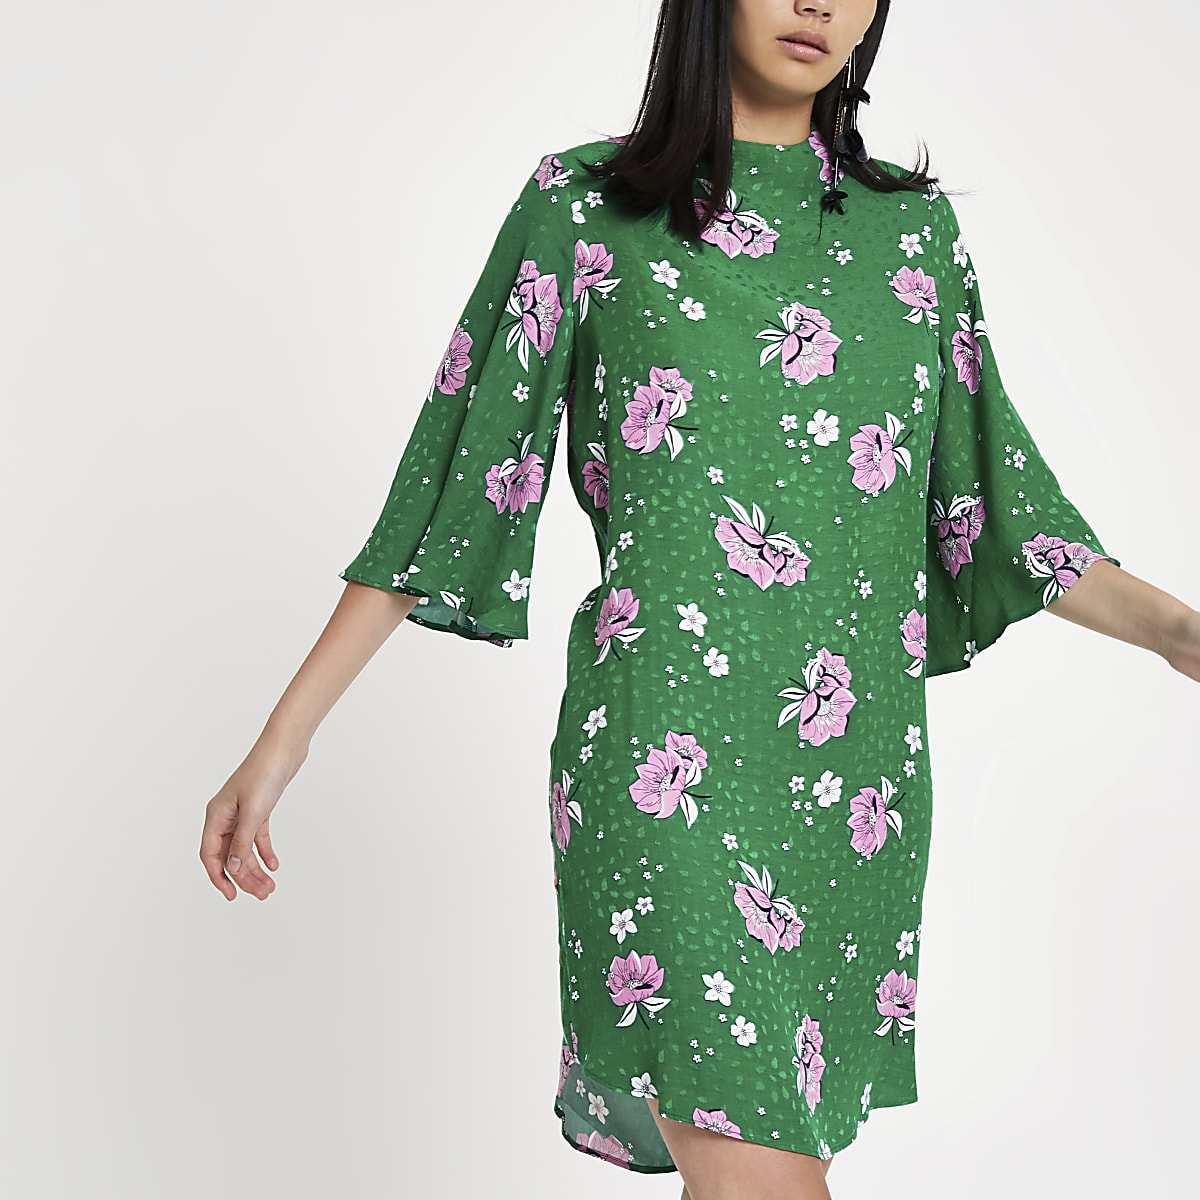 687fa3e6470e Green floral high neck swing dress - Swing Dresses - Dresses - women